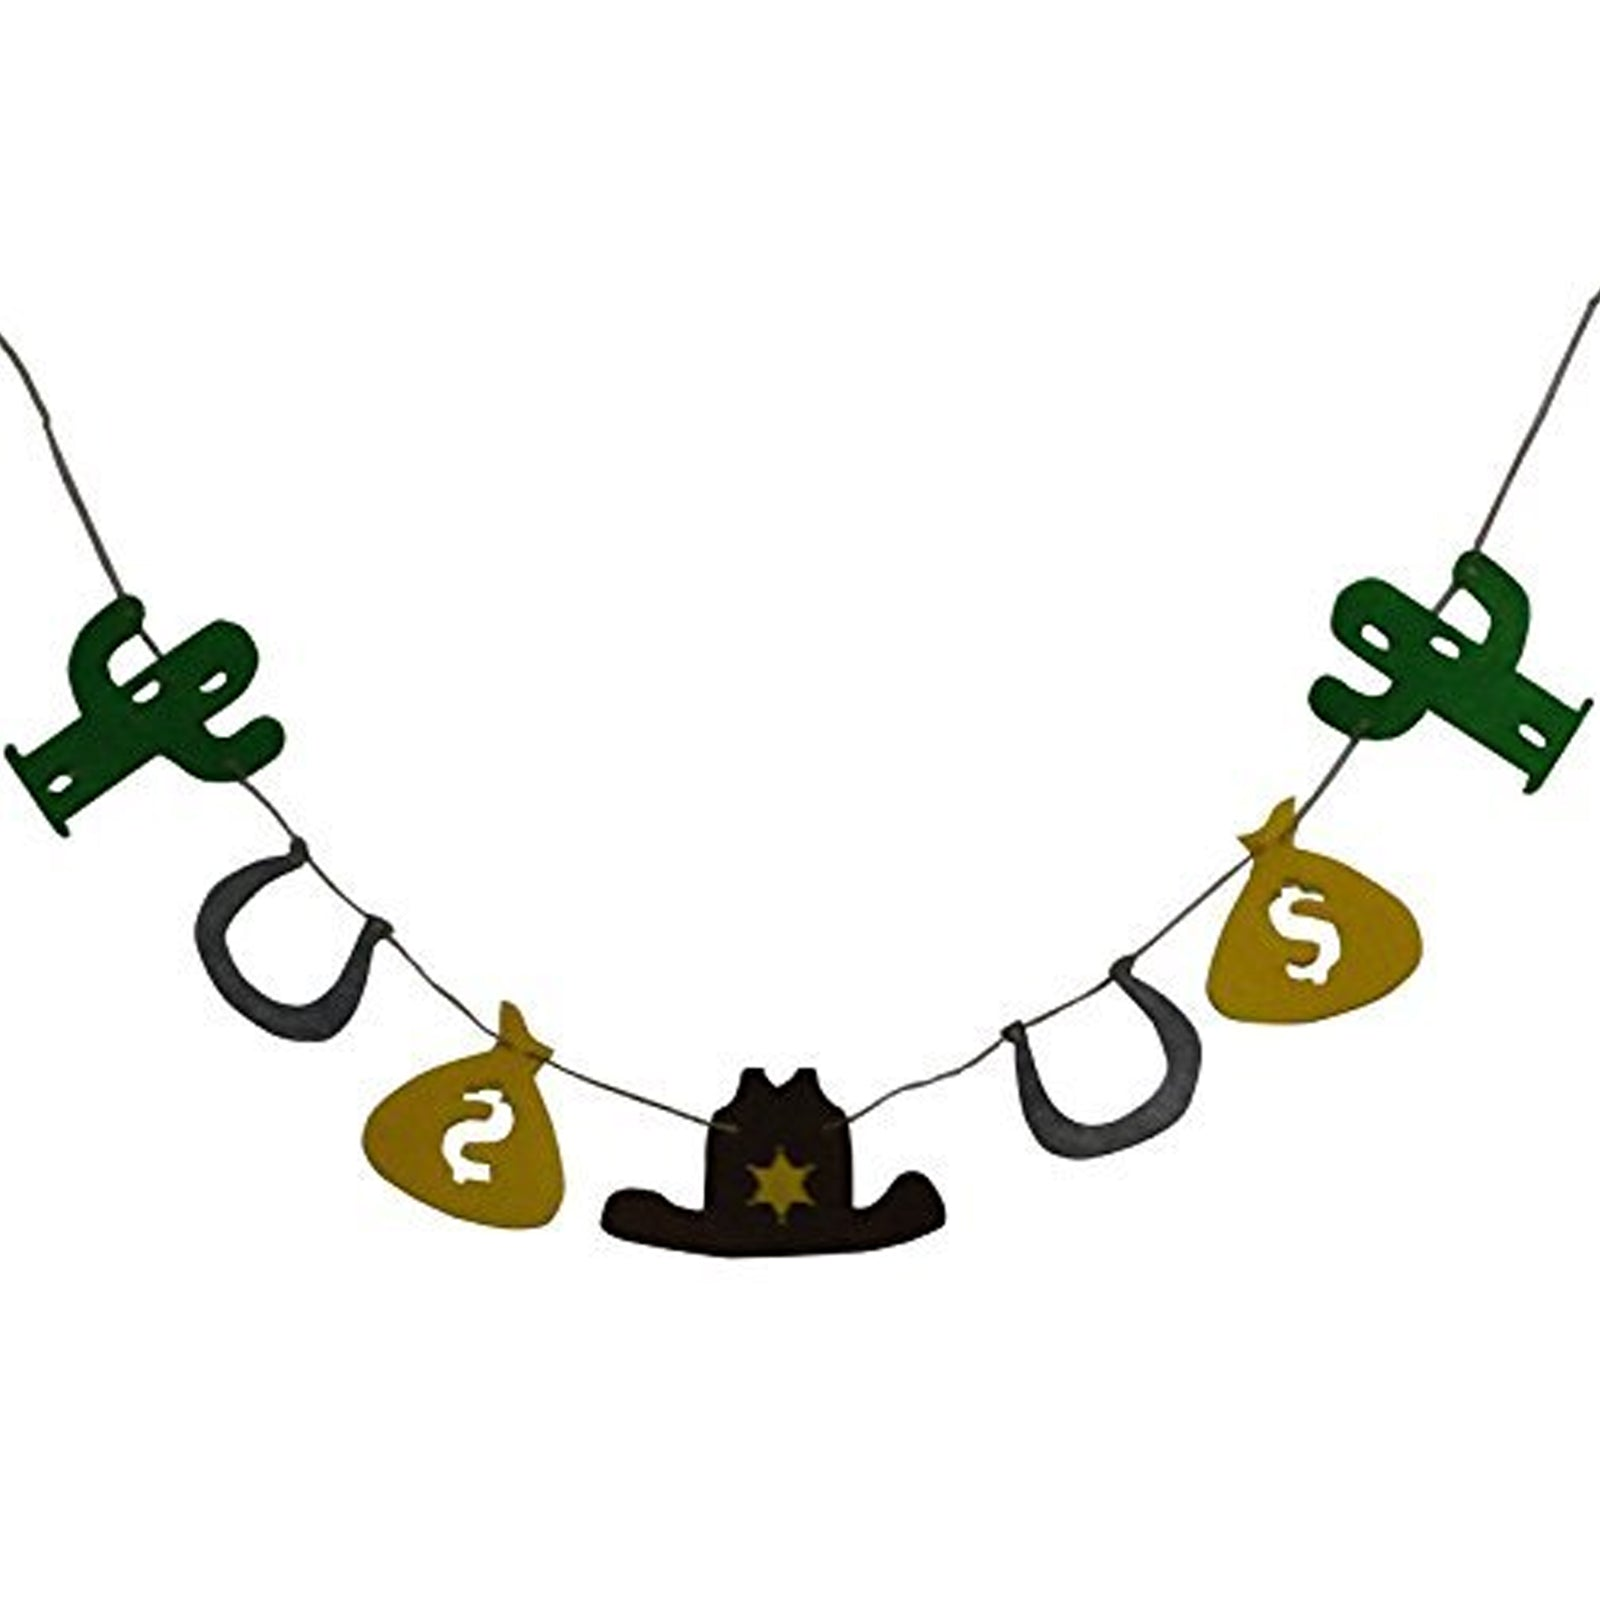 Cowboy Cop Loot Money Sack Fabric Garland Banner